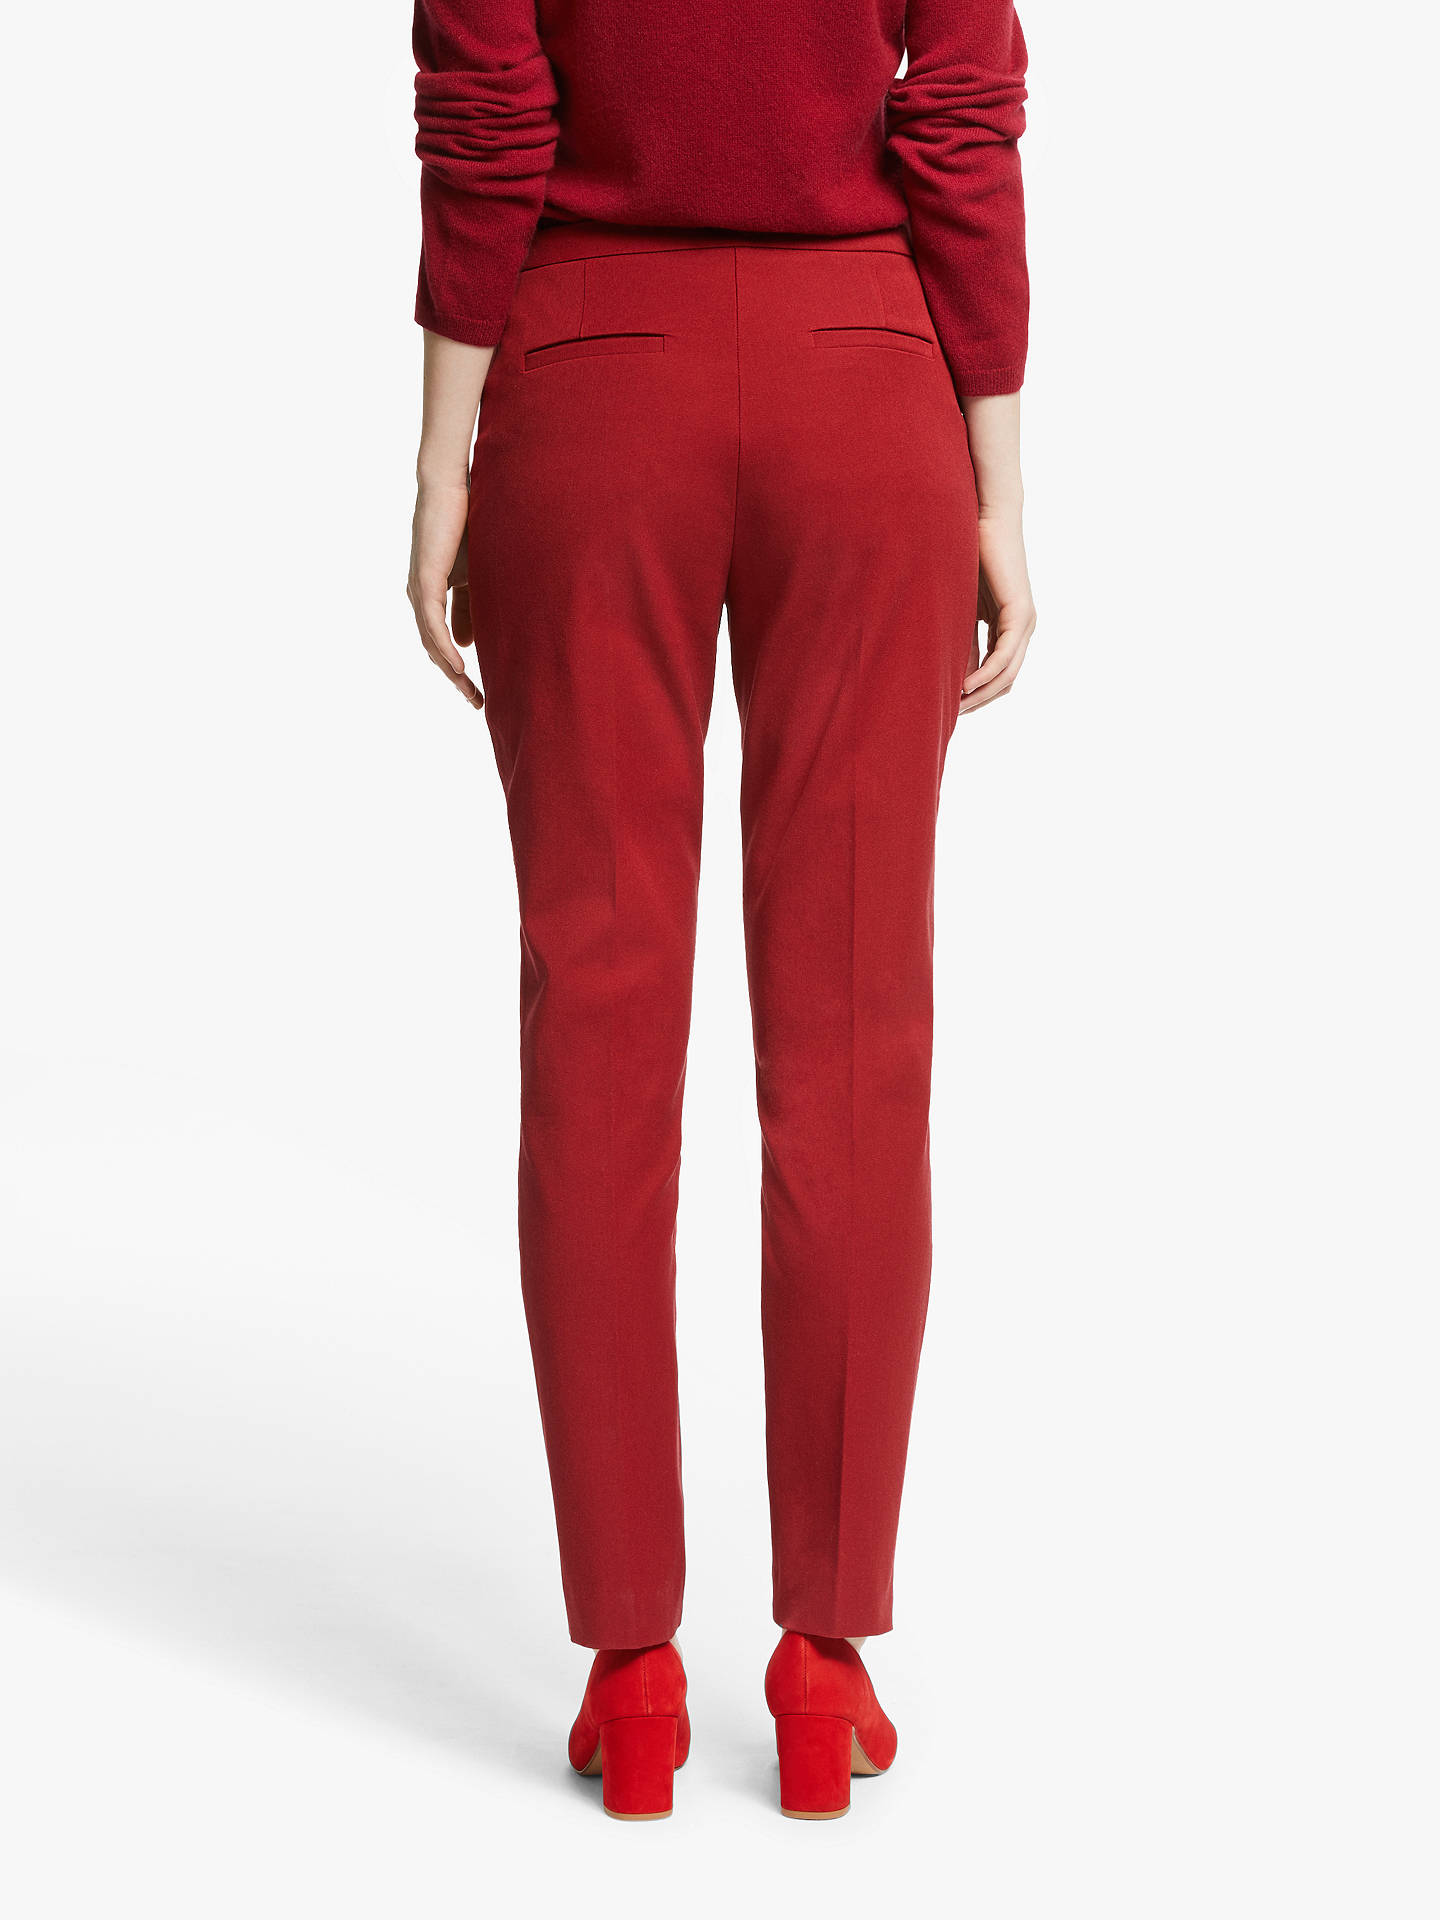 Buy John Lewis & Partners Dionne Trousers, Burgundy, 8 Online at johnlewis.com